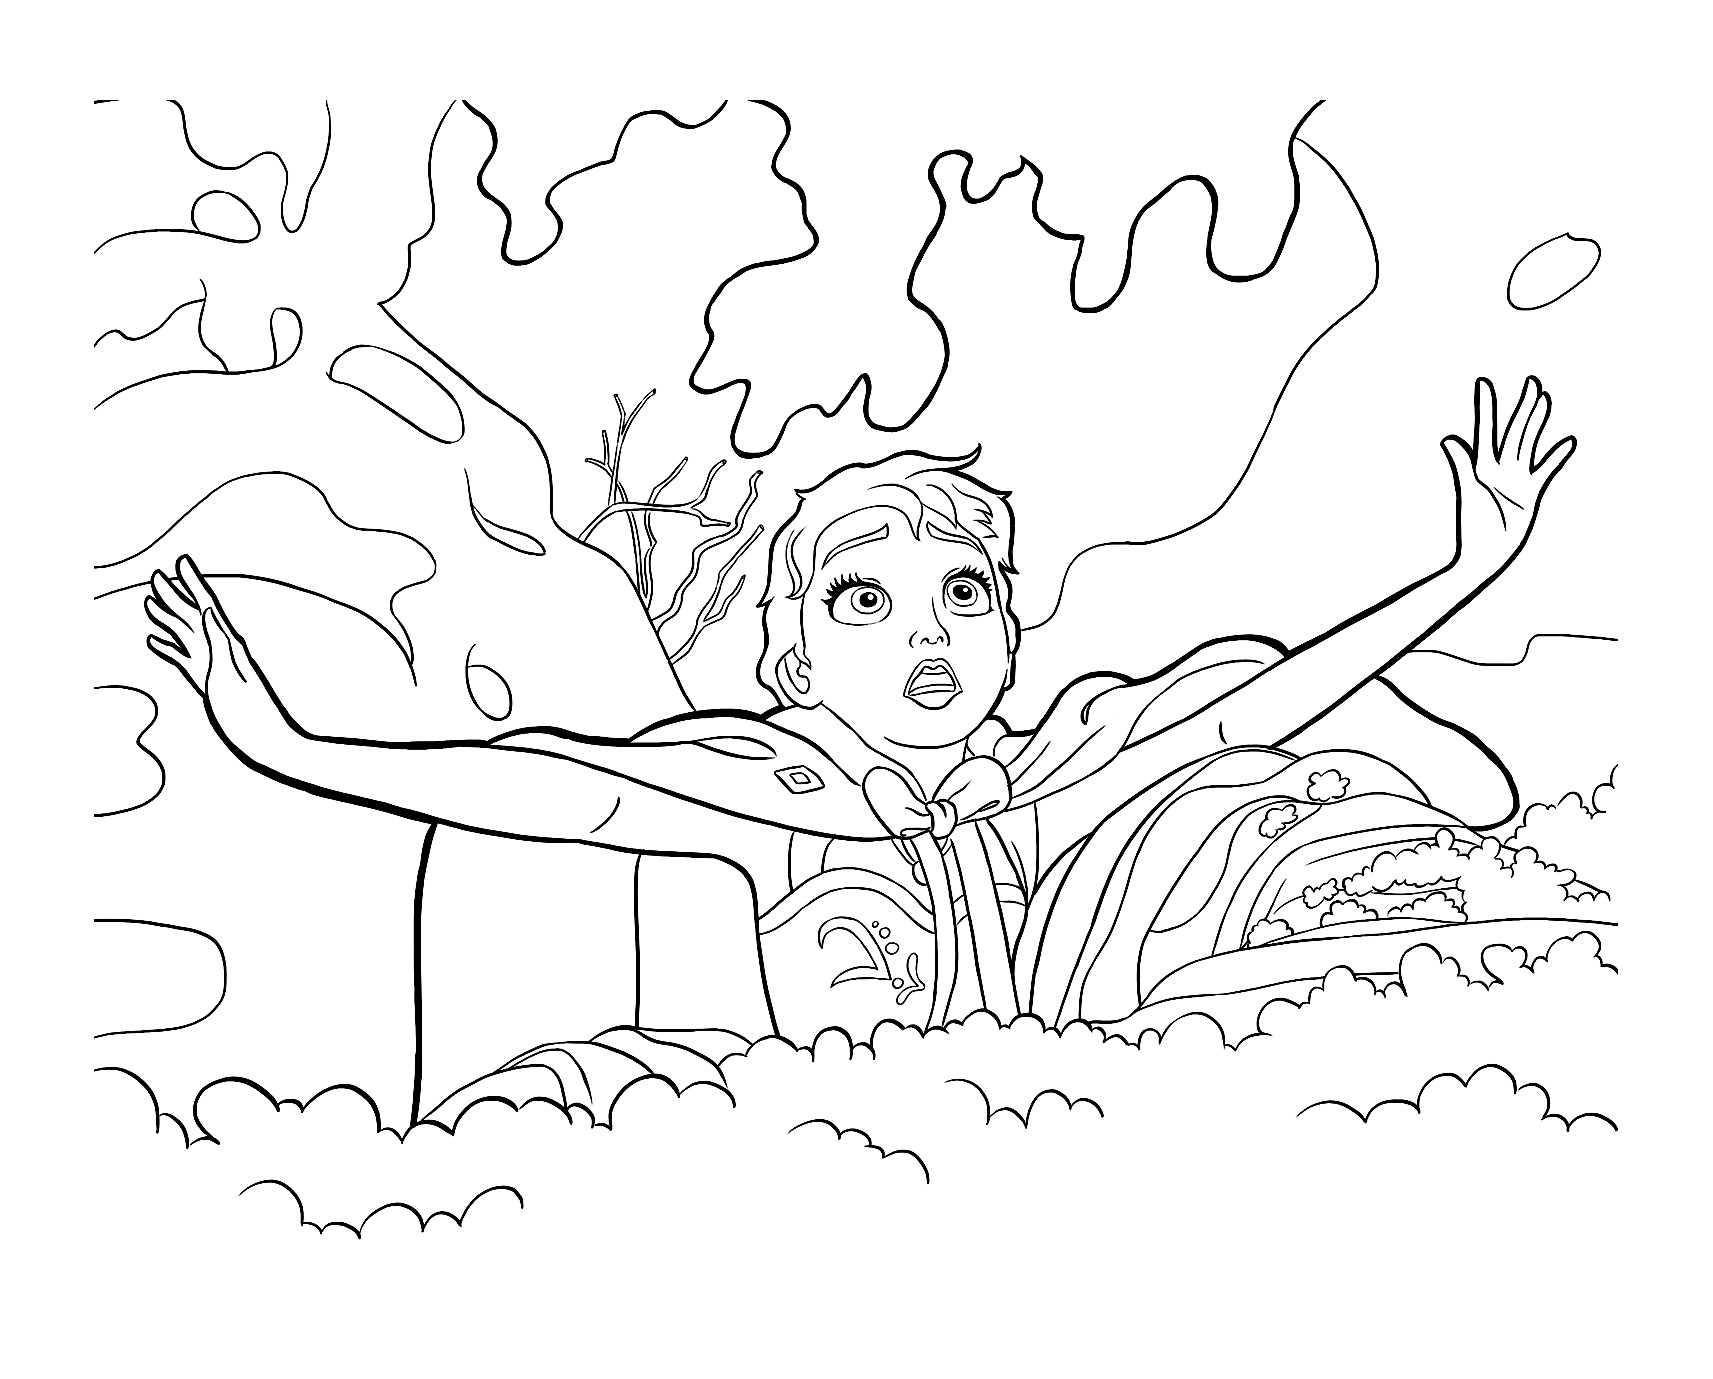 Simple Frozen coloring page : Elsa in bad situation